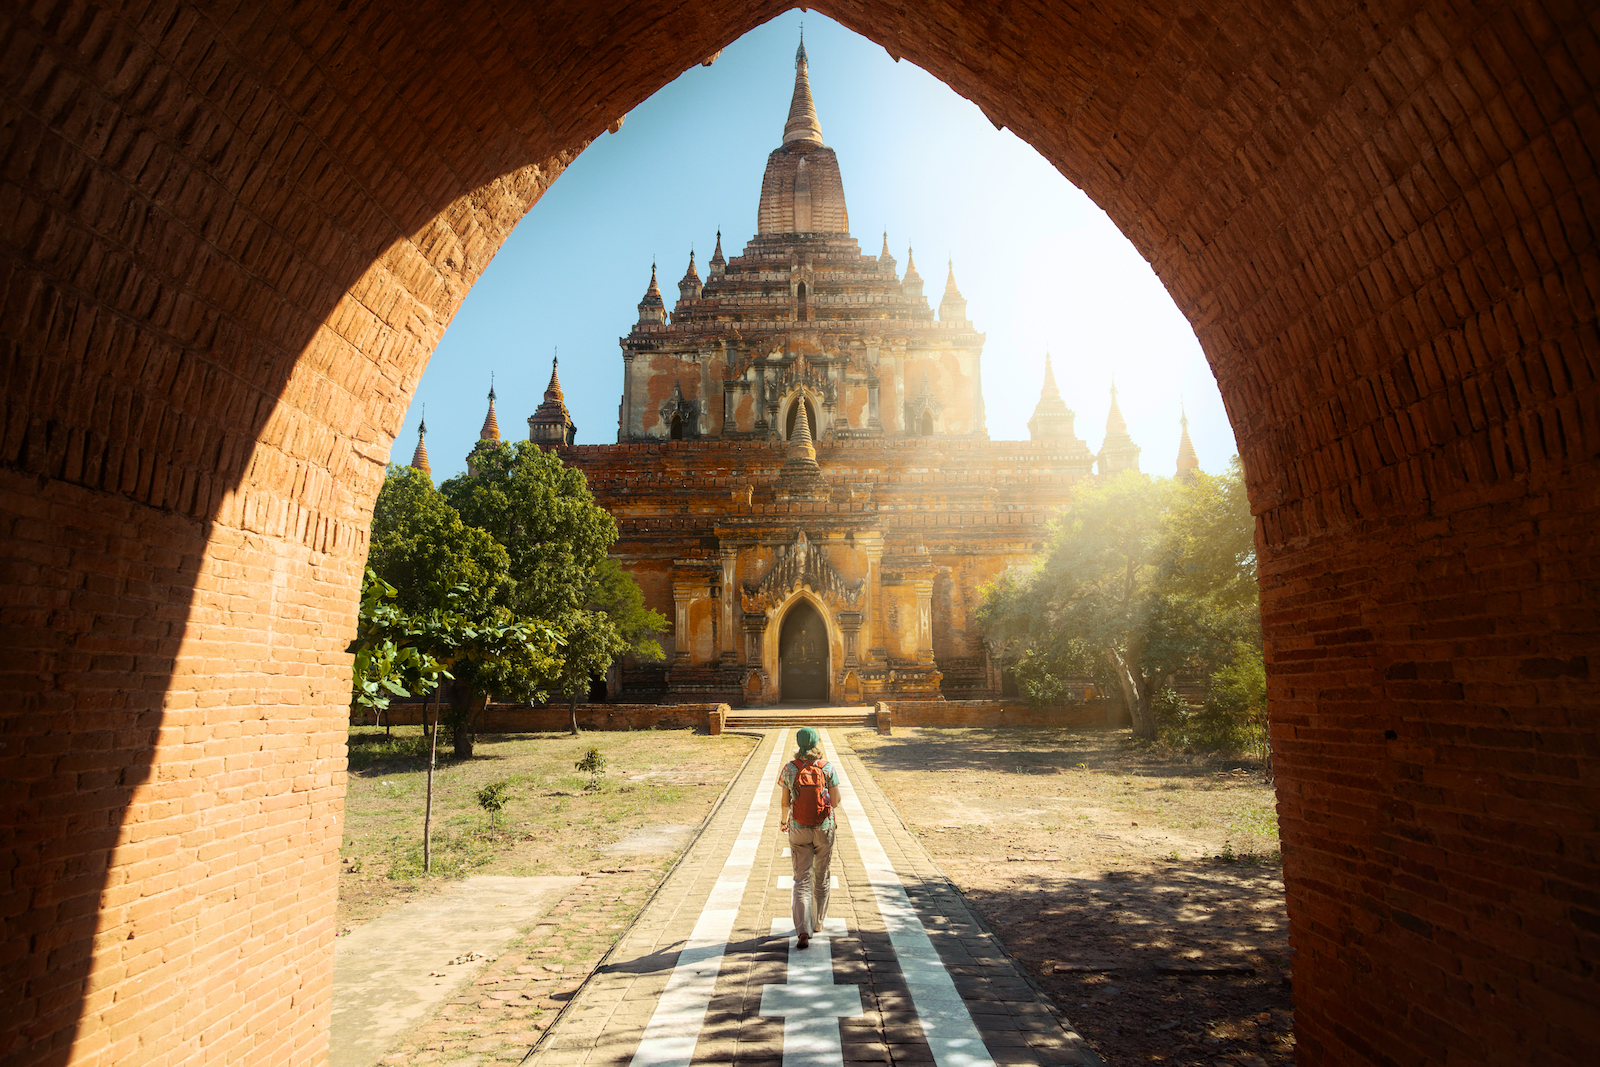 Traveler walking along road to Htilominlo temple in Bagan. Burma